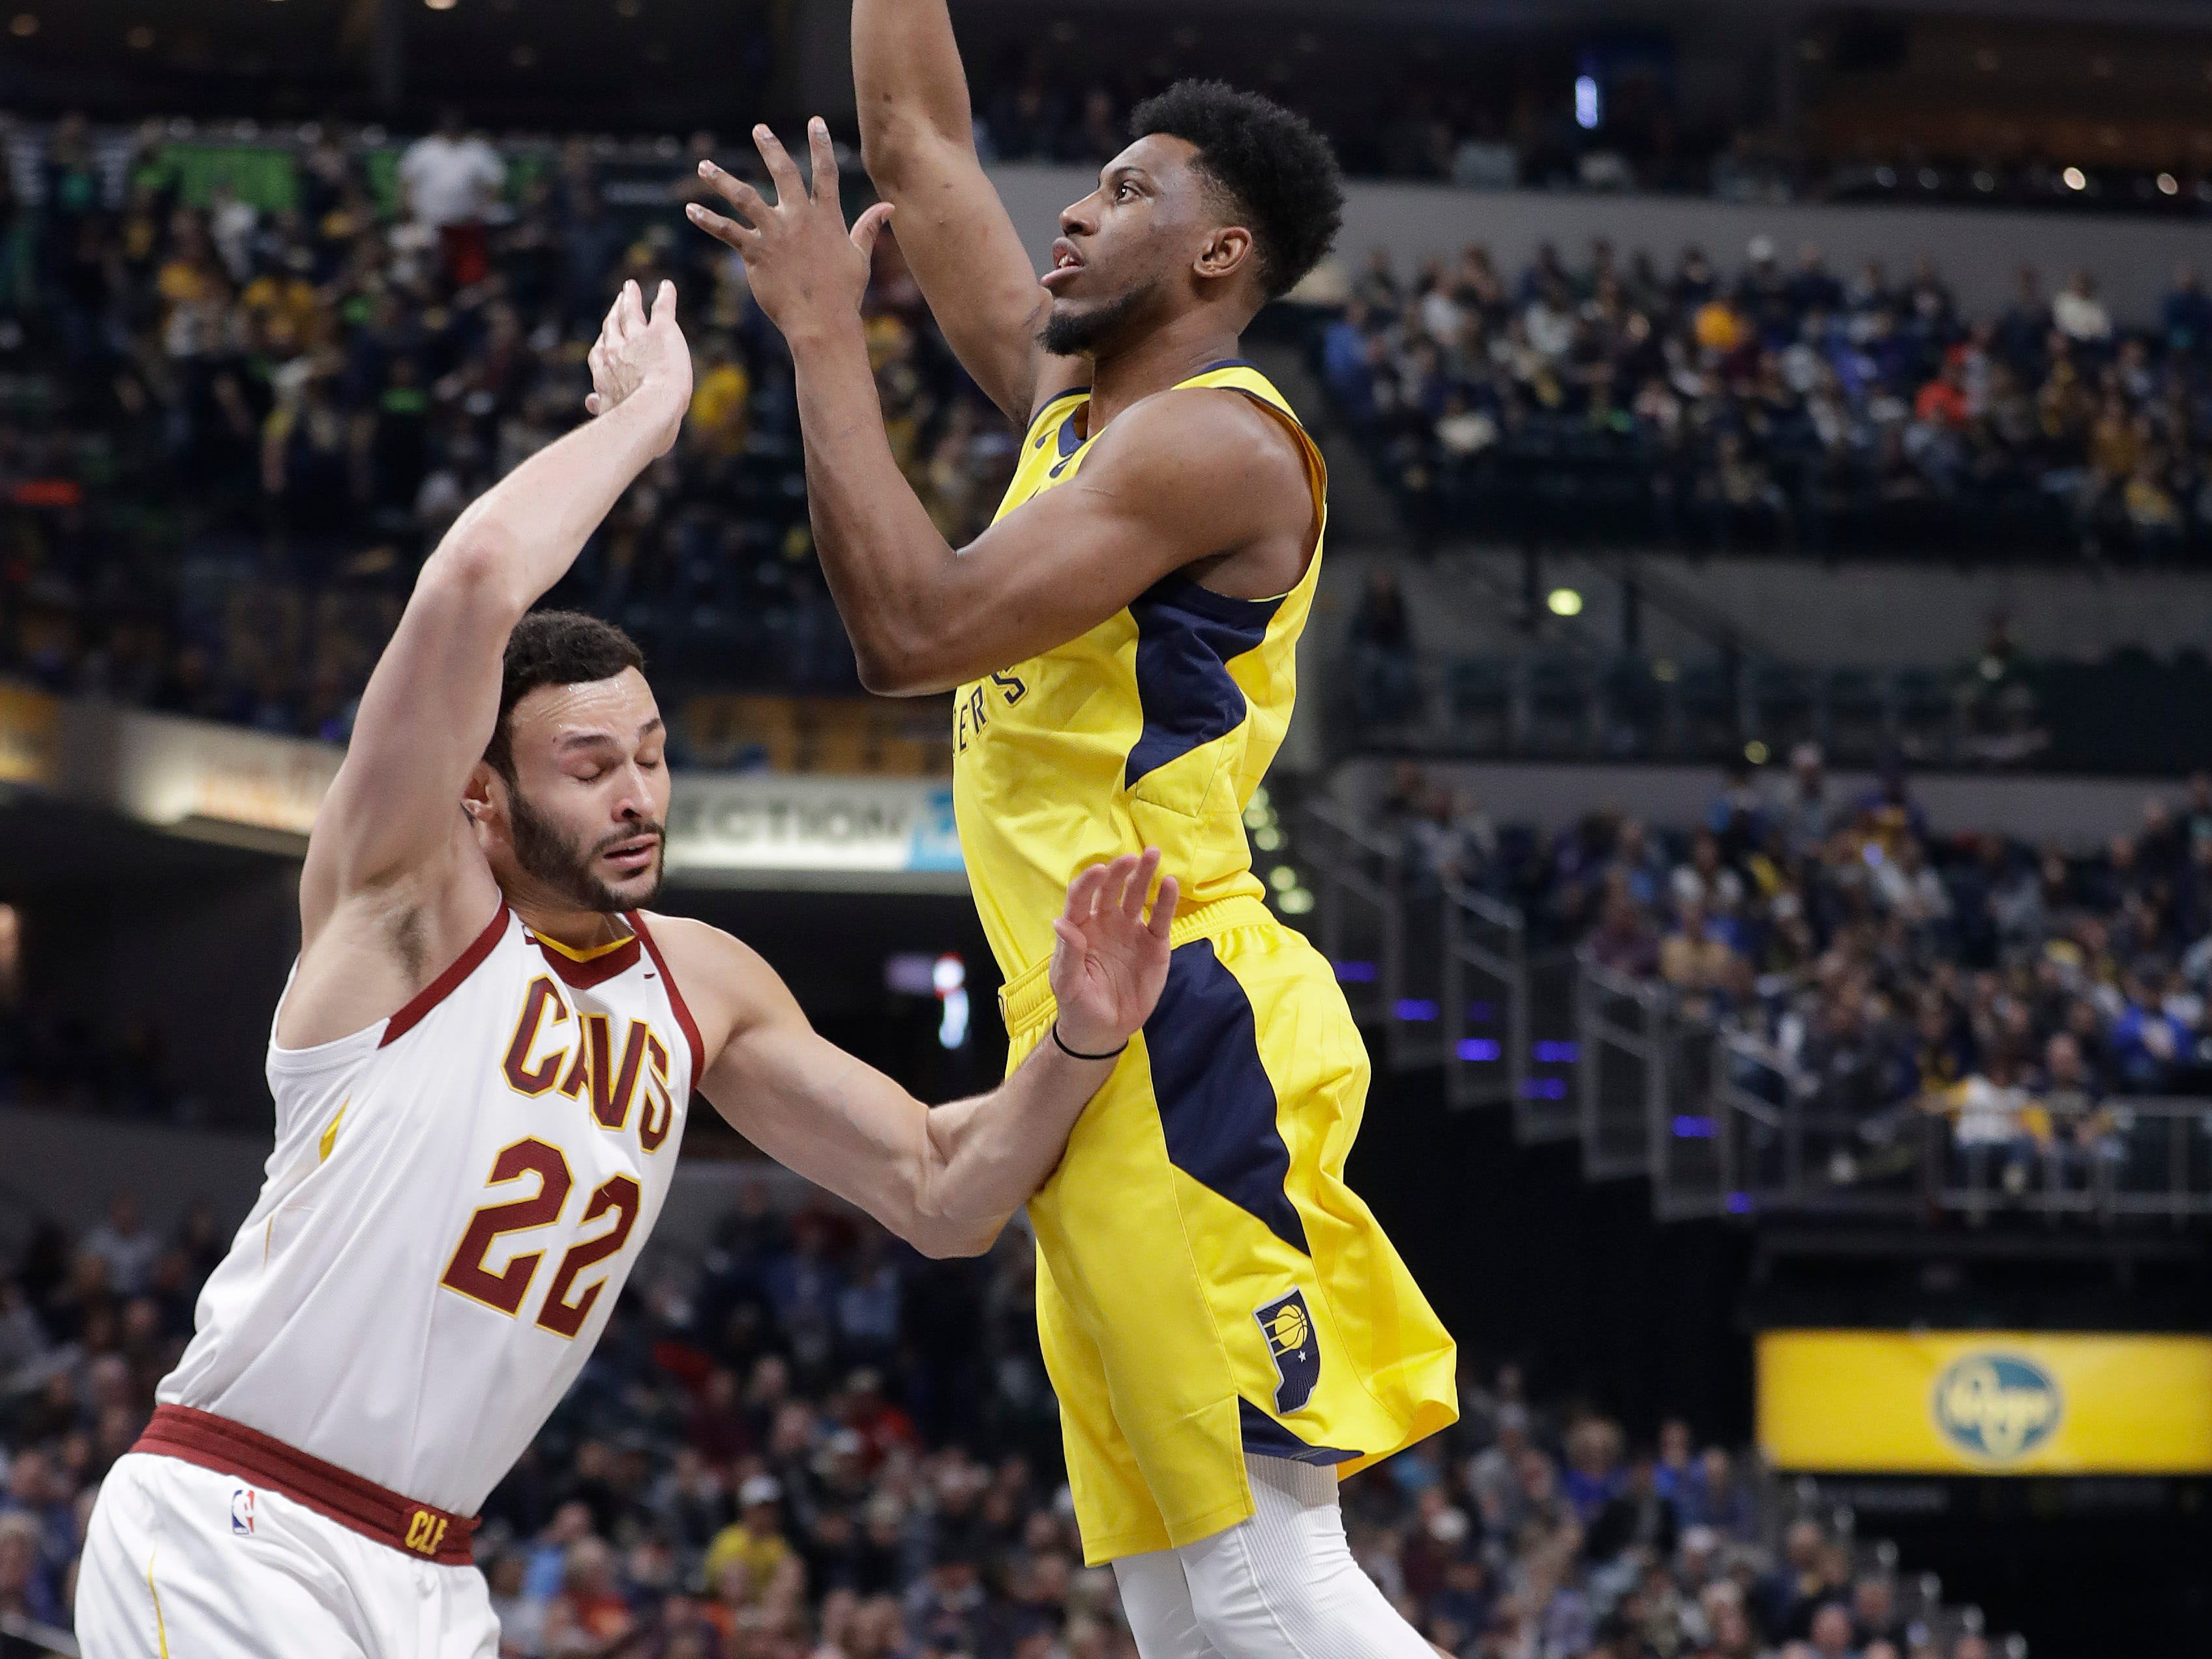 Indiana Pacers' Thaddeus Young shoots over Cleveland Cavaliers' Larry Nance Jr. during the first half.